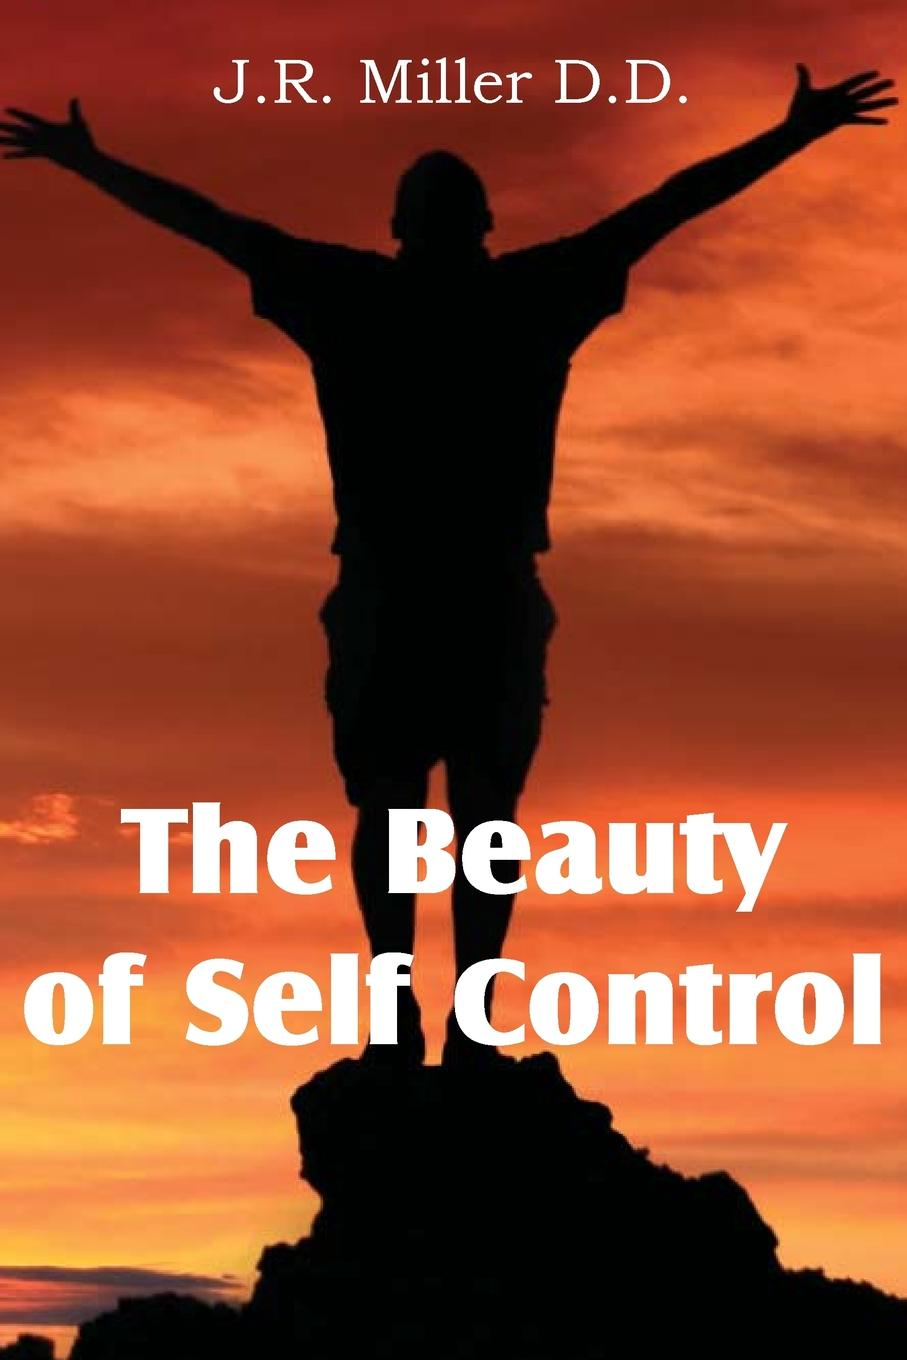 J. R. Miller The Beauty of Self Control thayer miller lindaflor l d miller words of faith a christian perspective a critical view of religion society and the destiny of mankind